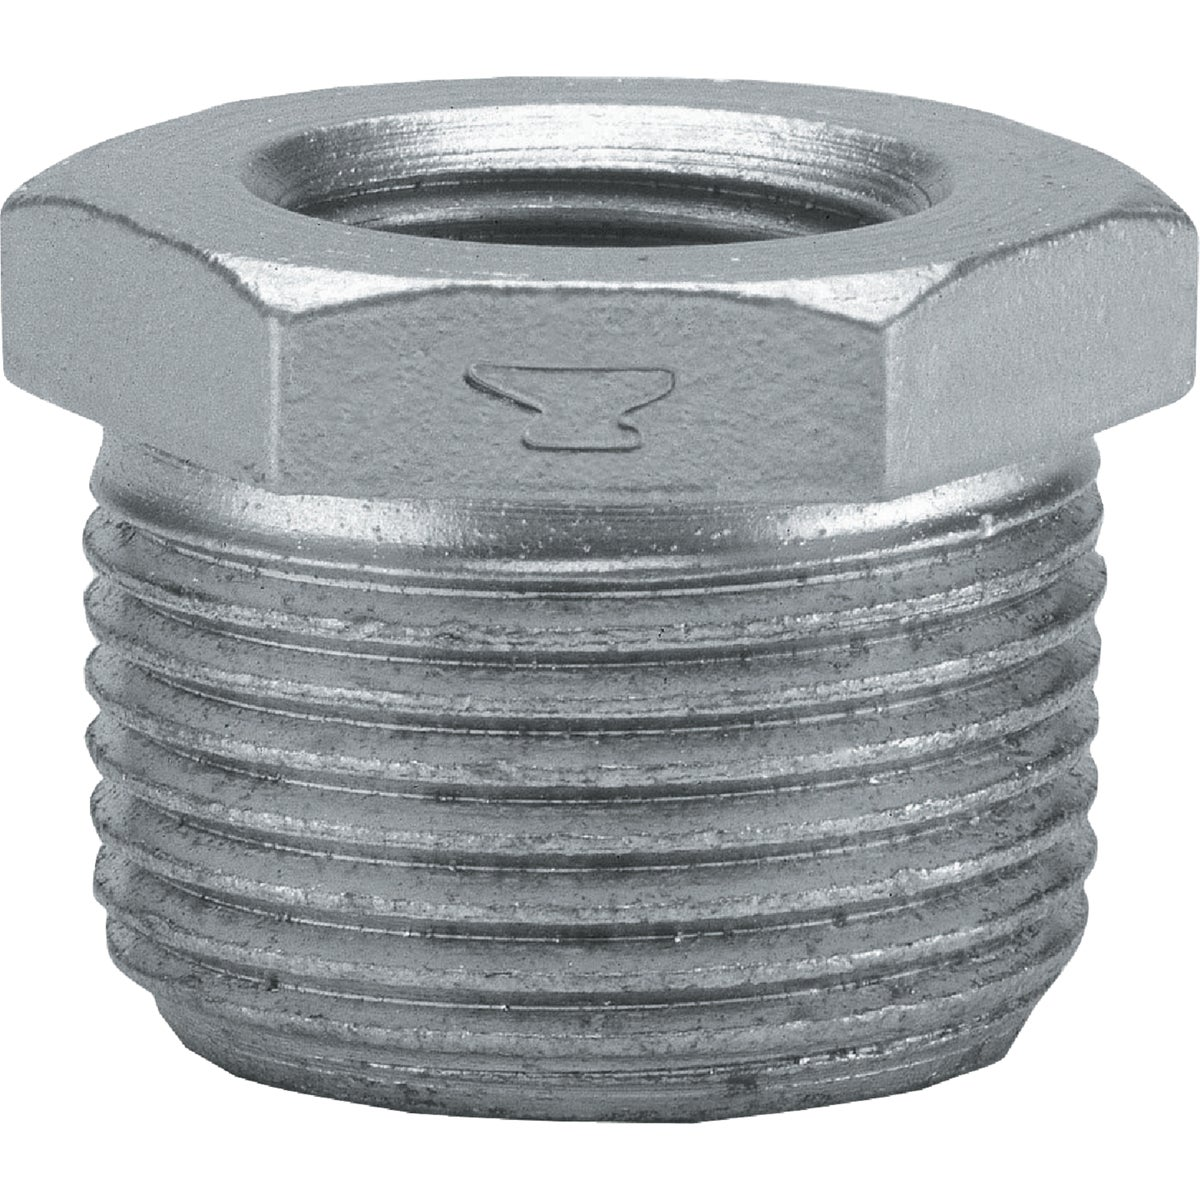 3/4X1/4 GALV BUSHING - 8700130605 by Anvil International